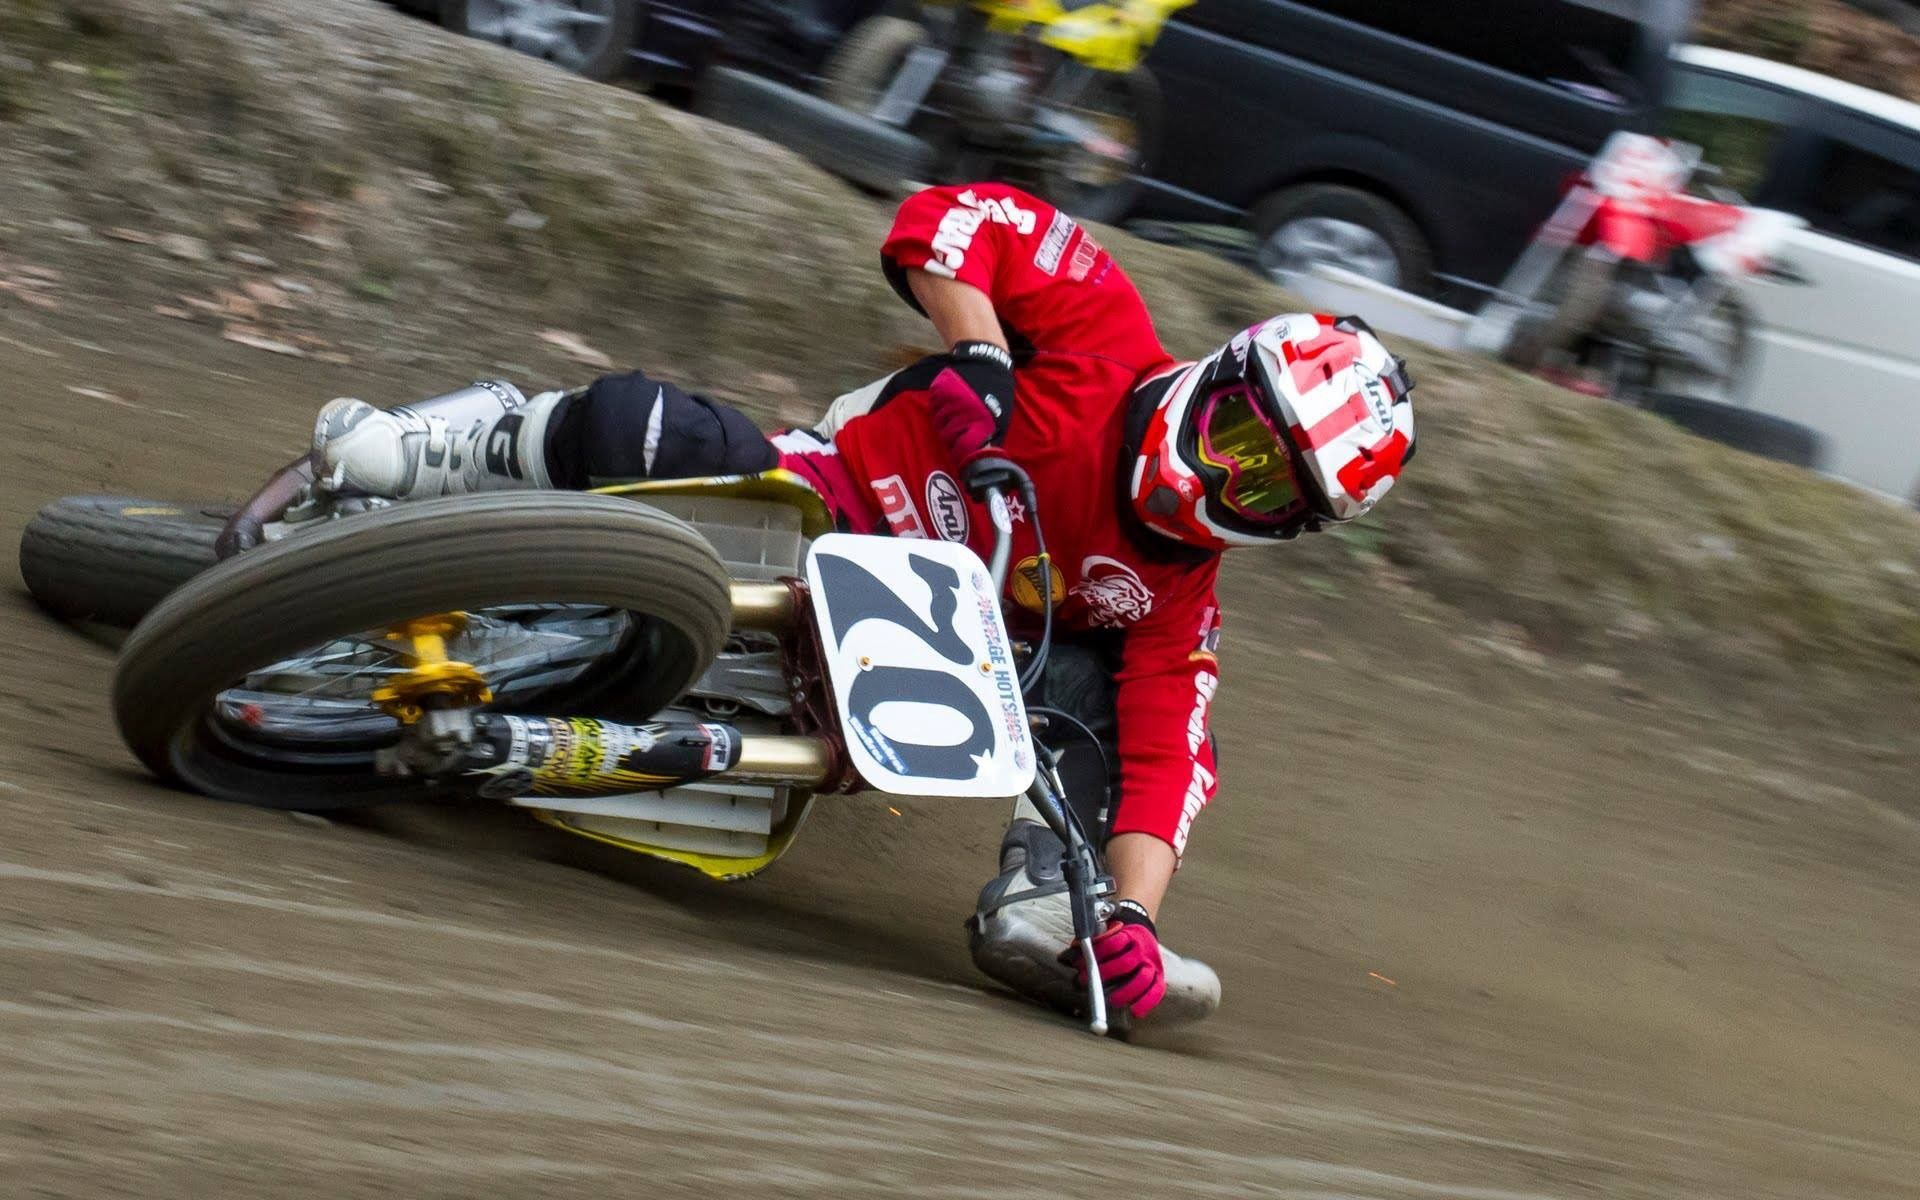 Pin By Jeff Hoffman On Bikes Flat Track Motorcycle Motorcycle Flat Track Racing